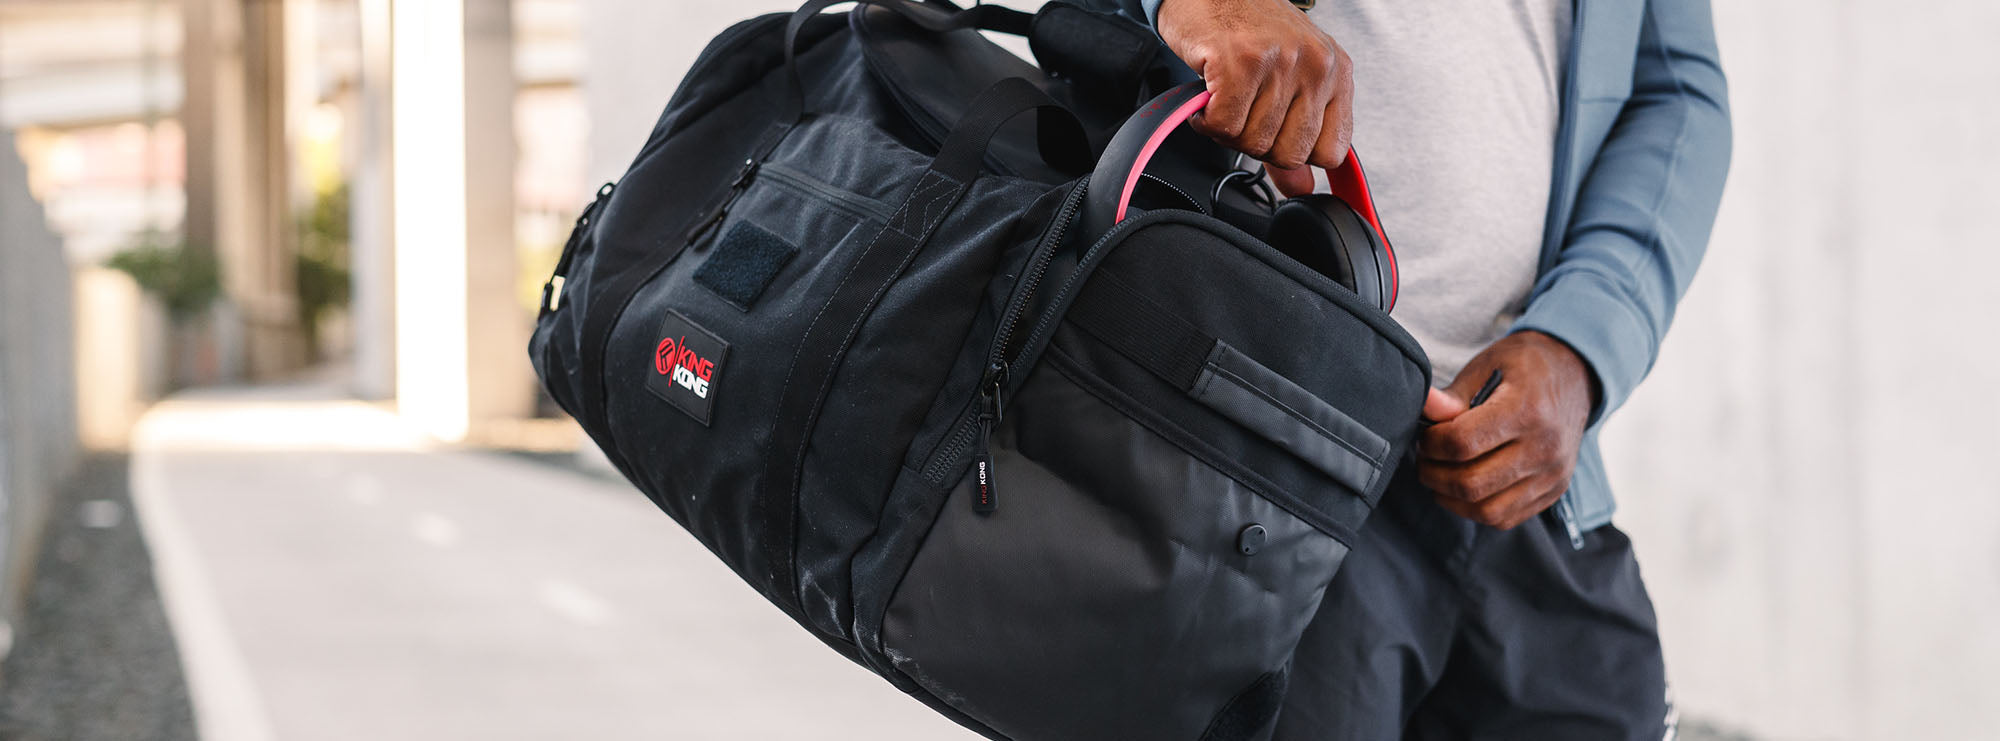 Gym bag compartment for shoes and clothes